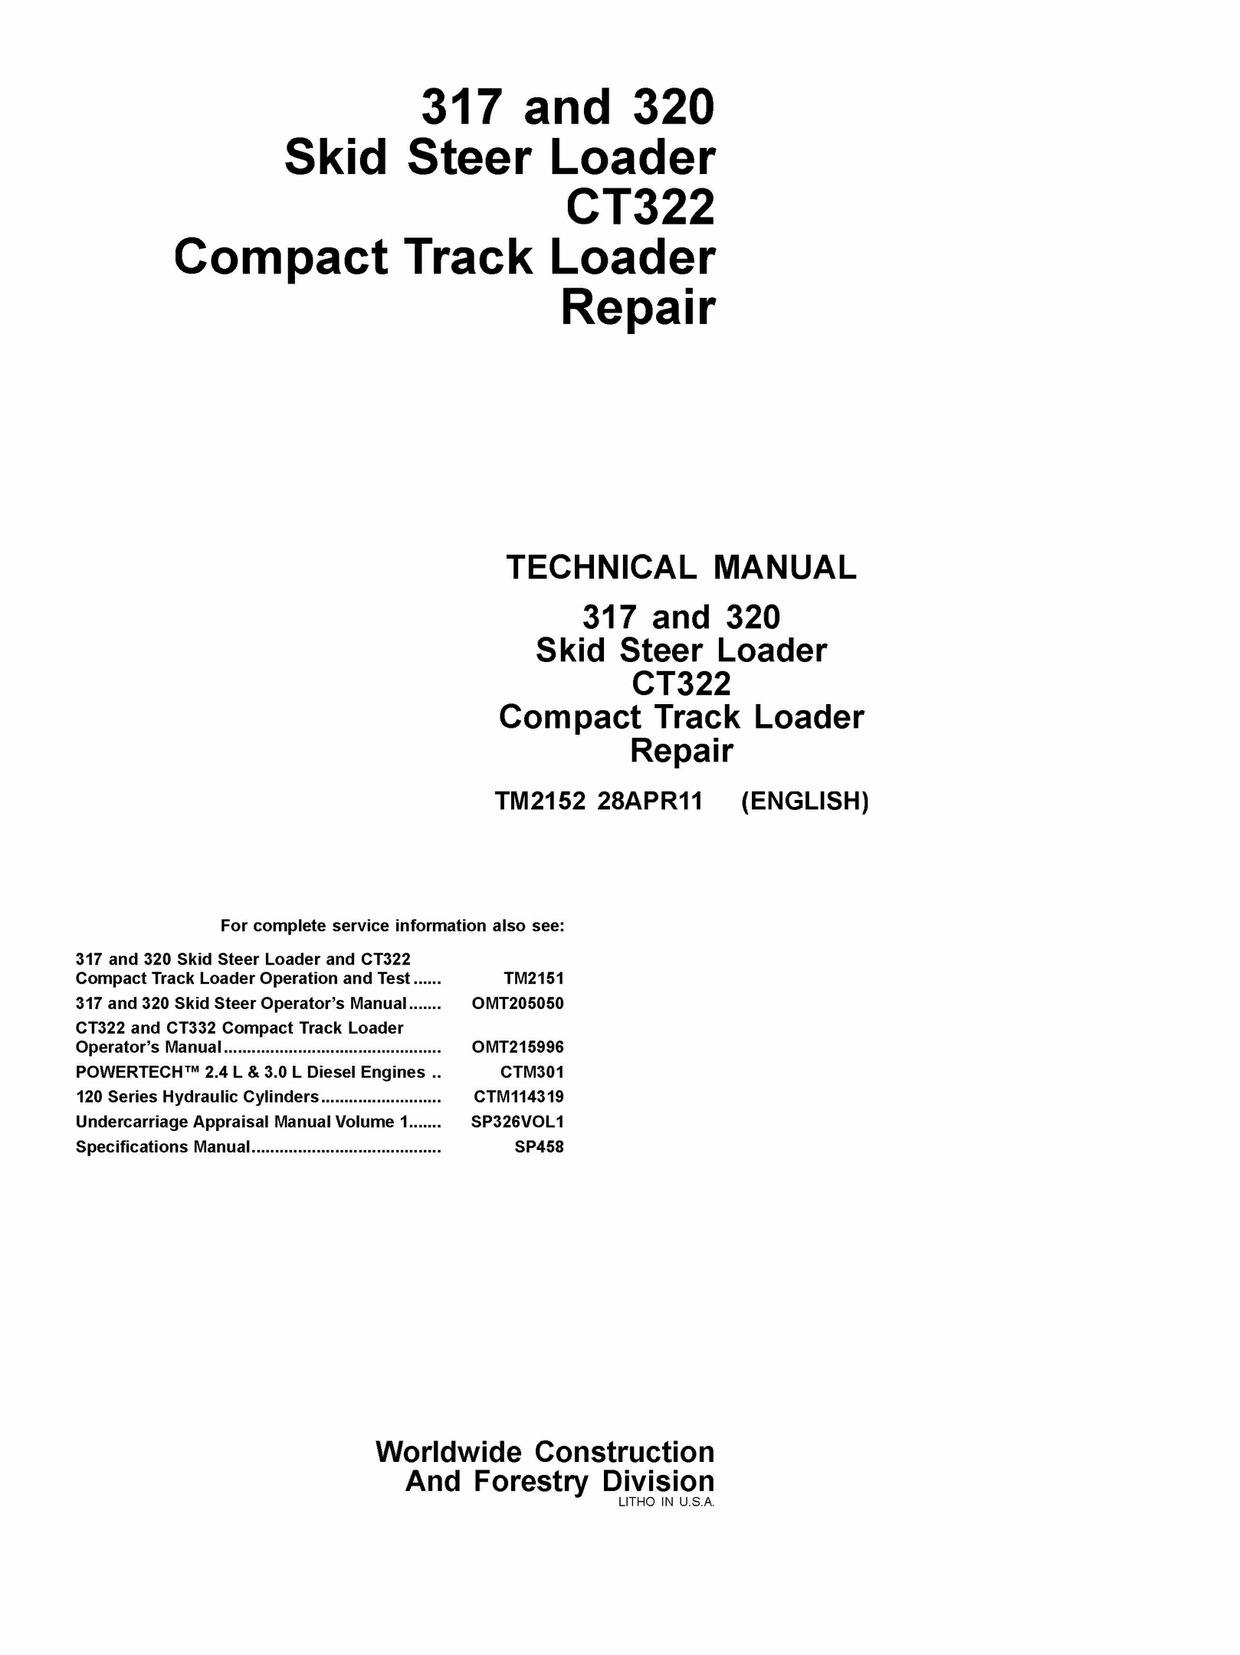 Pdf John Deere 317, 320 Skid Steer Loader and CT322 Compact Track Loader Repair Manual TM2152